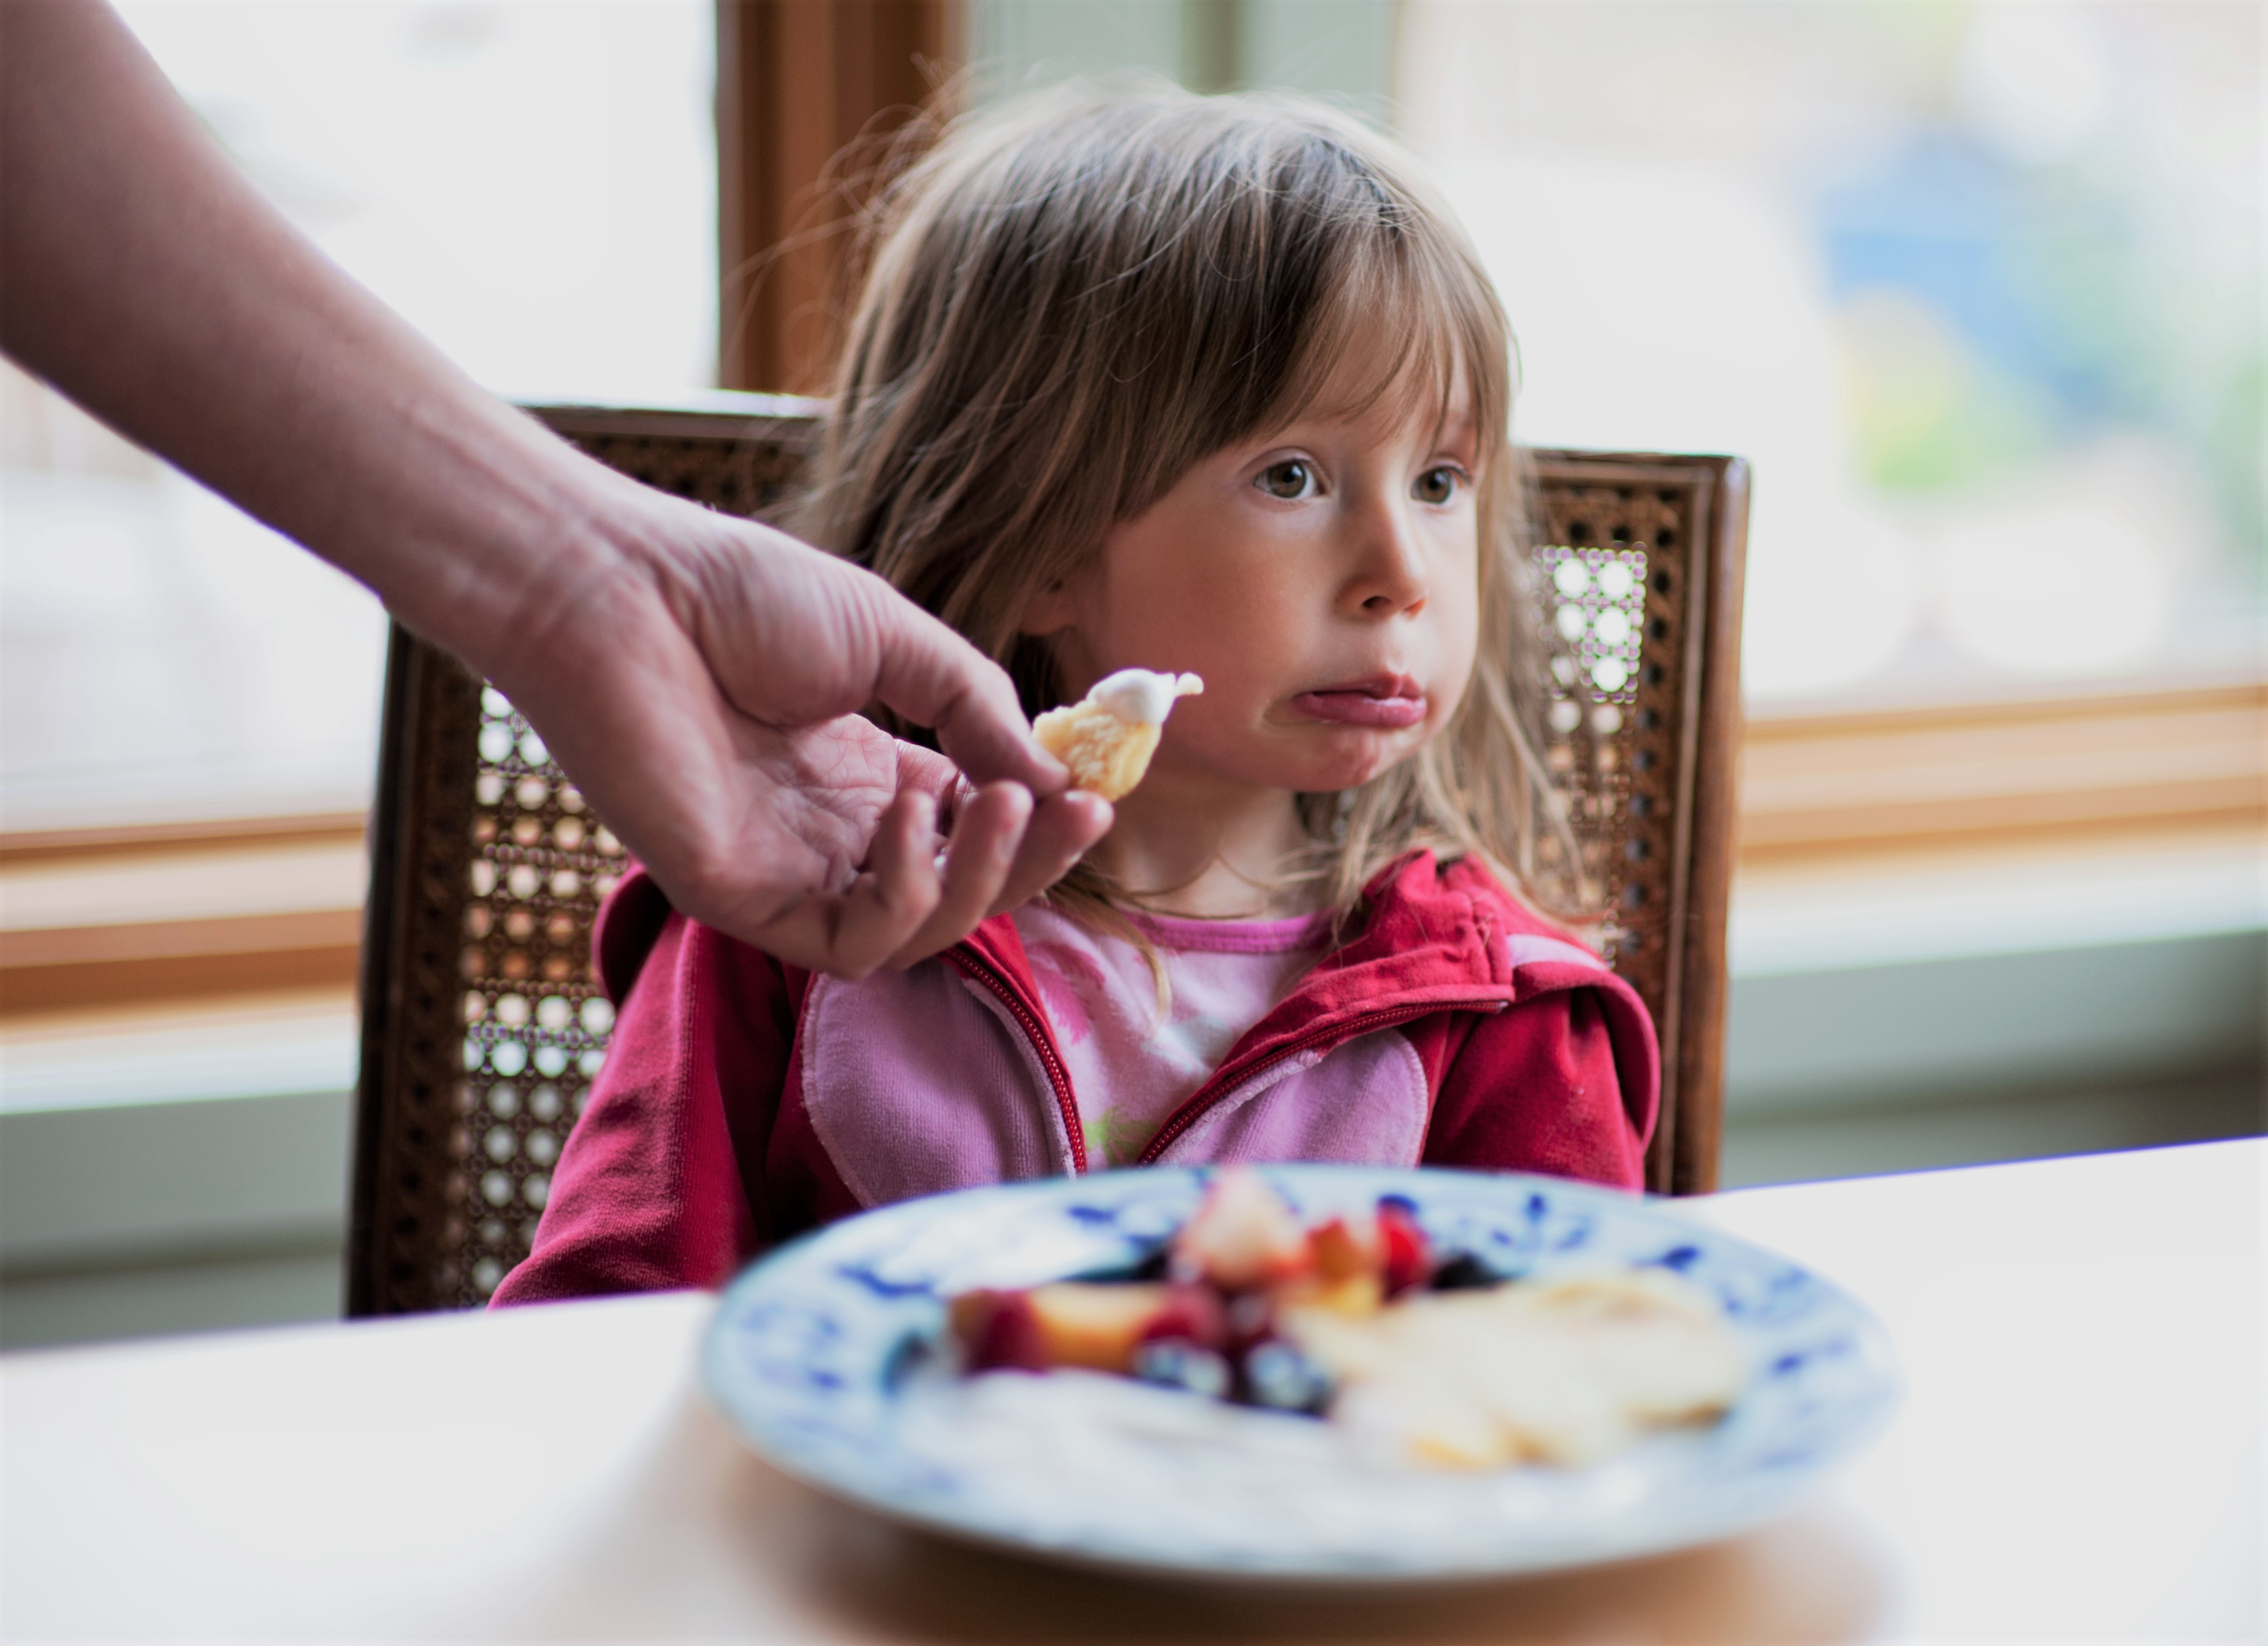 Picky Eater Girl Makes Face When Offered Food